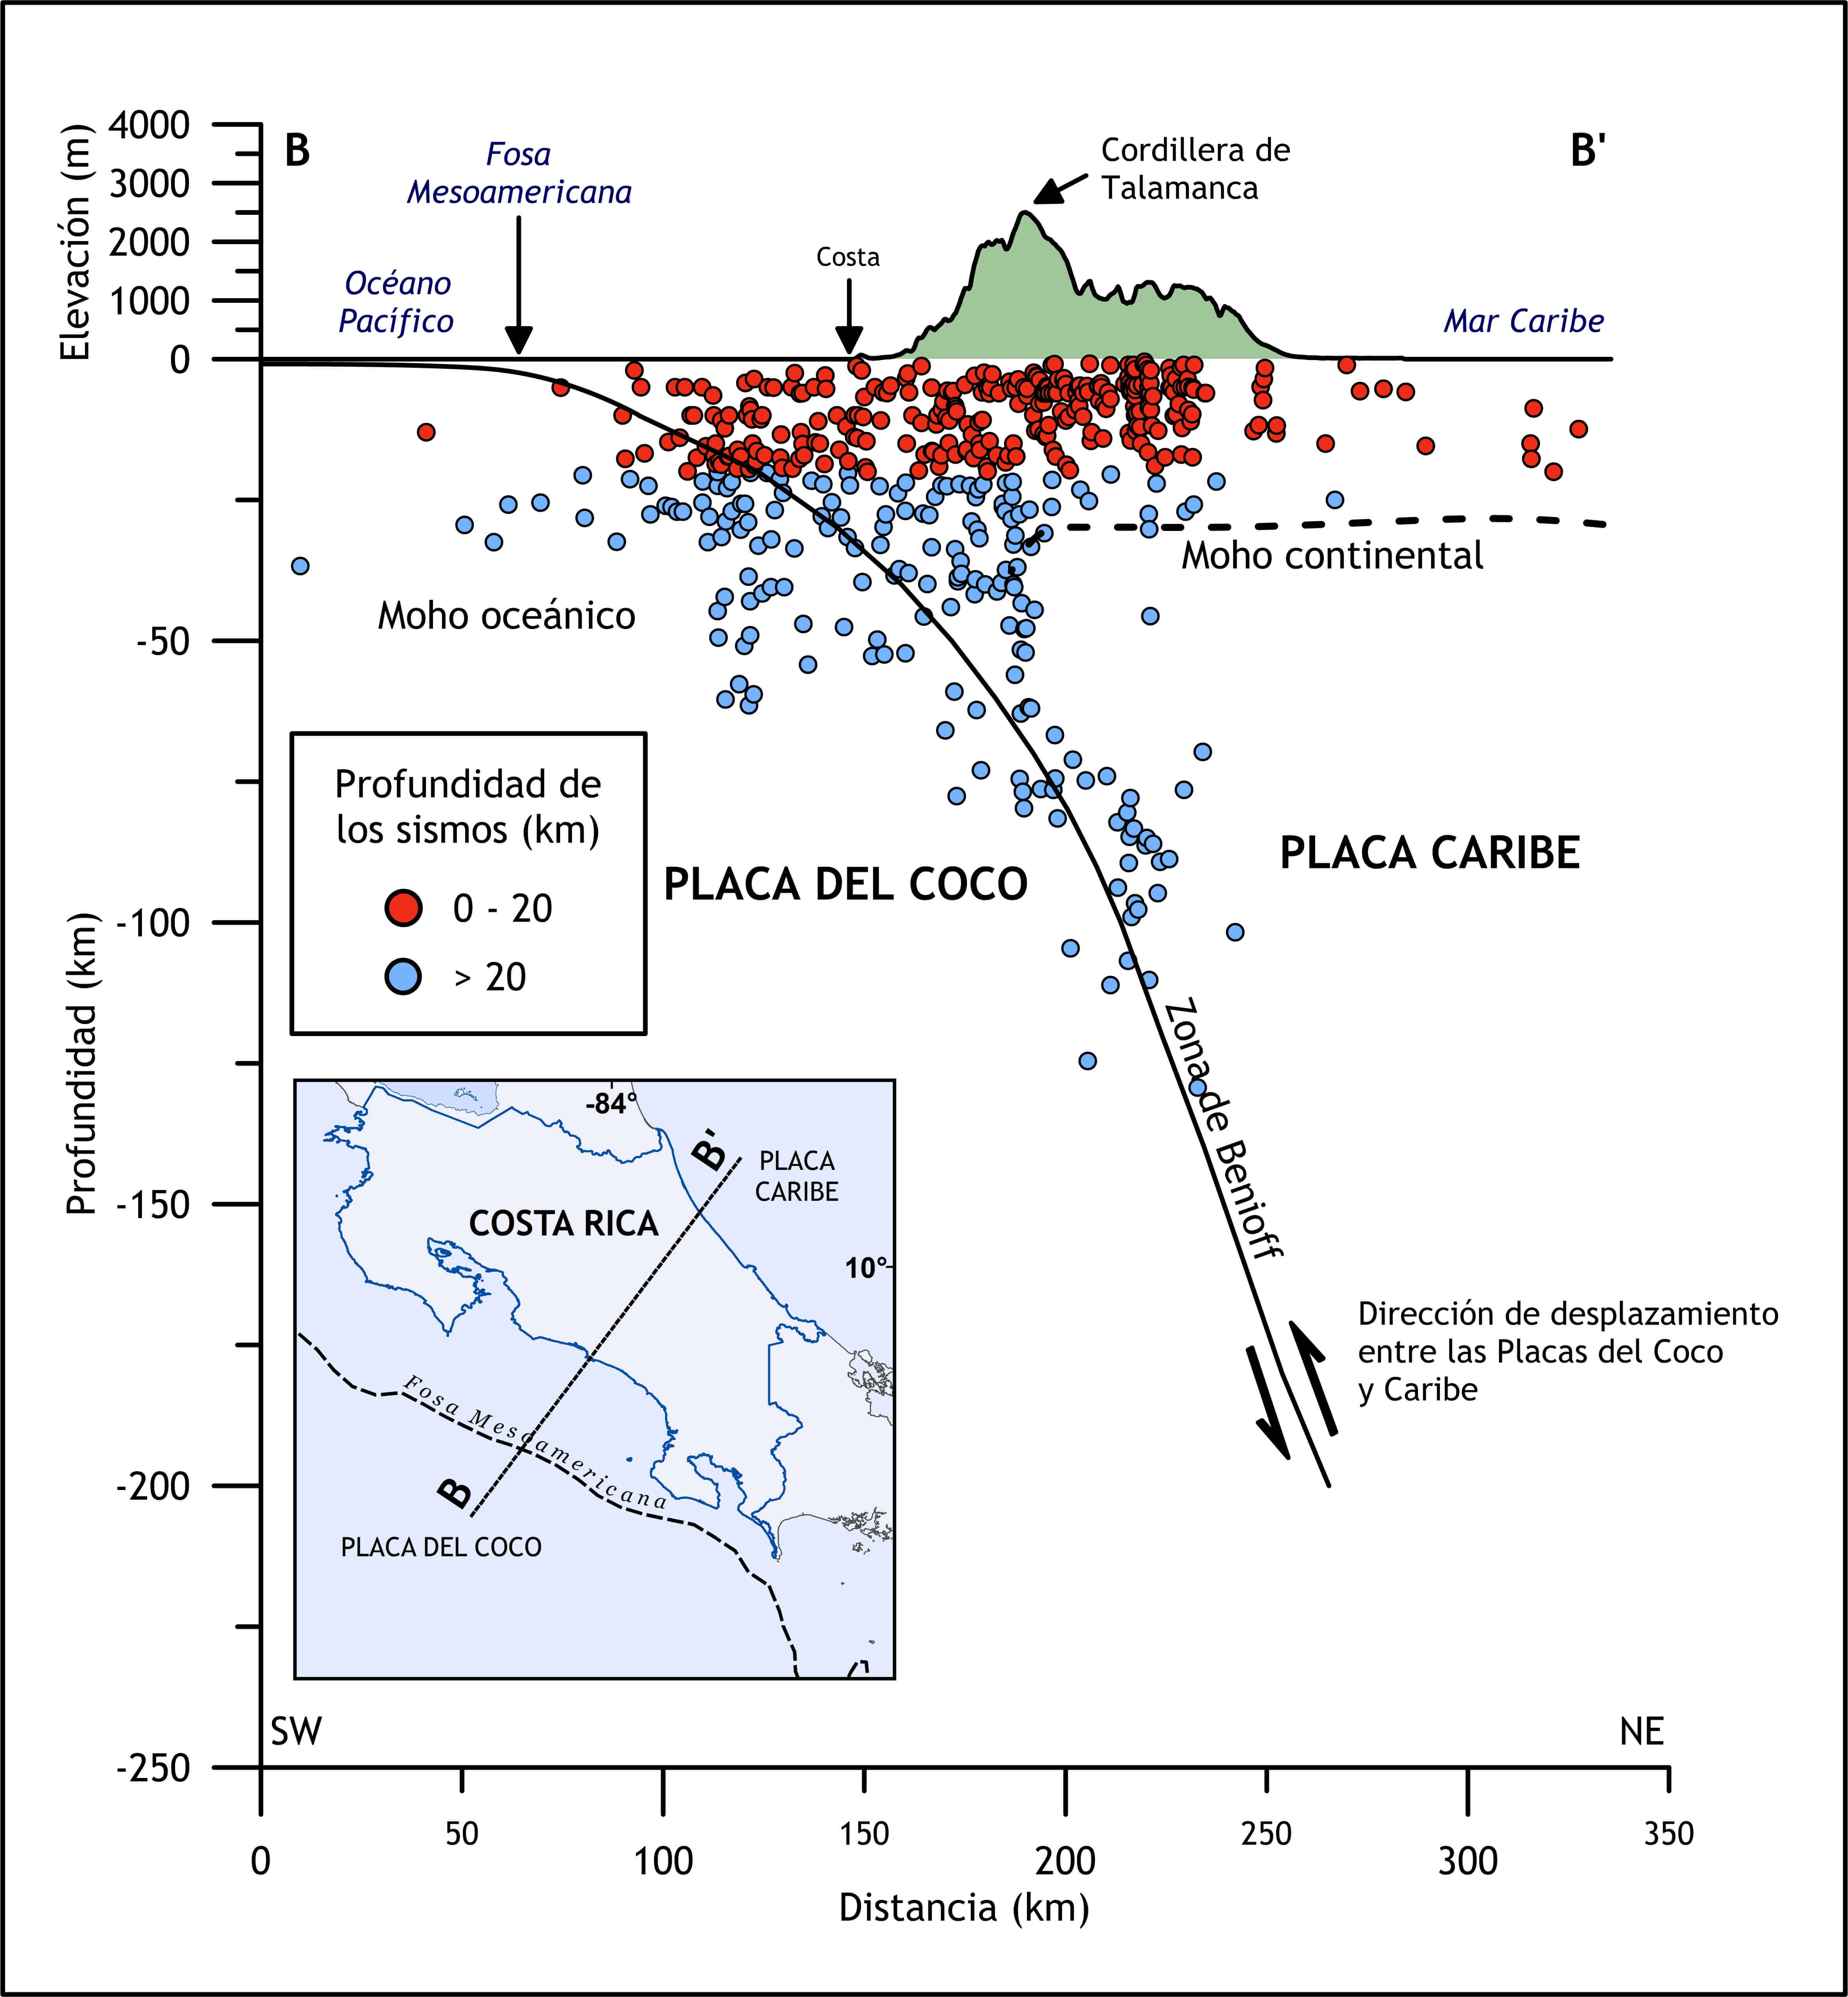 Grapher 2D & 3D graphing software: line/scatter plot of the subduction profile of the Cocos Plate under the Caribbean Plate in Costa Rica